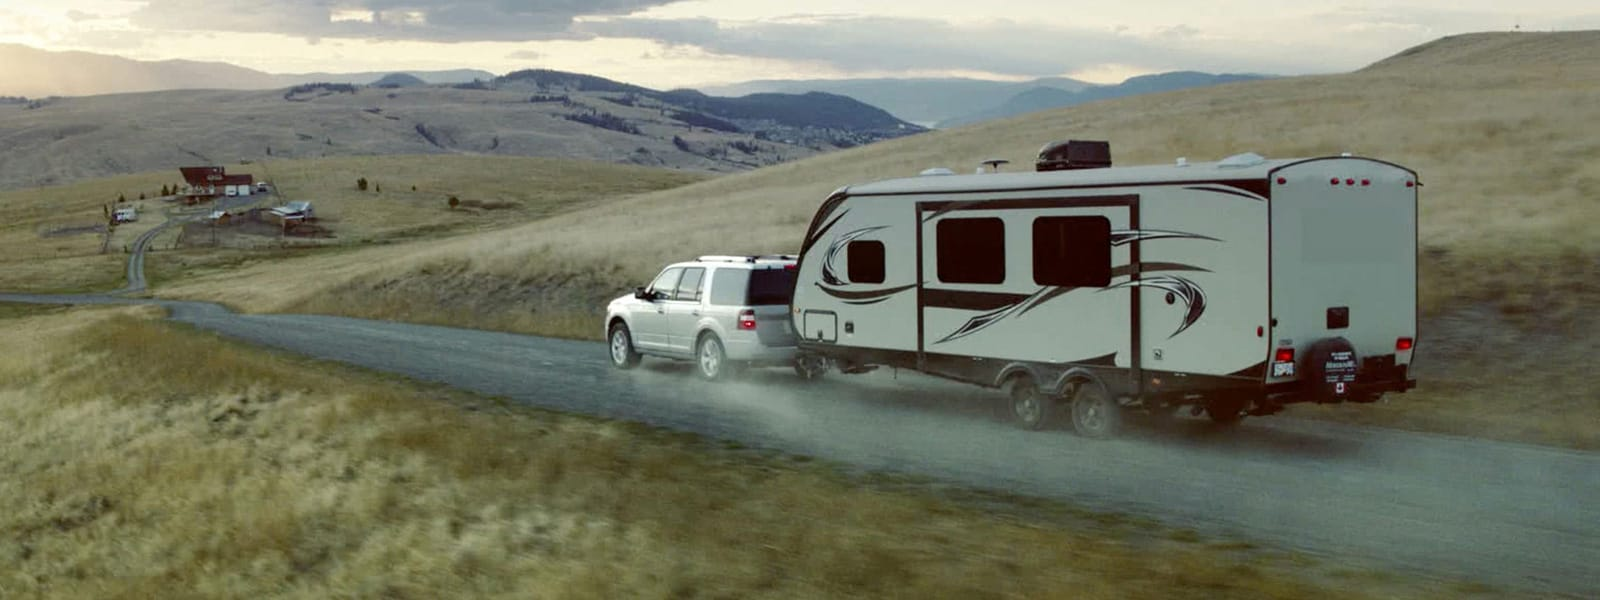 travel trailer on the road